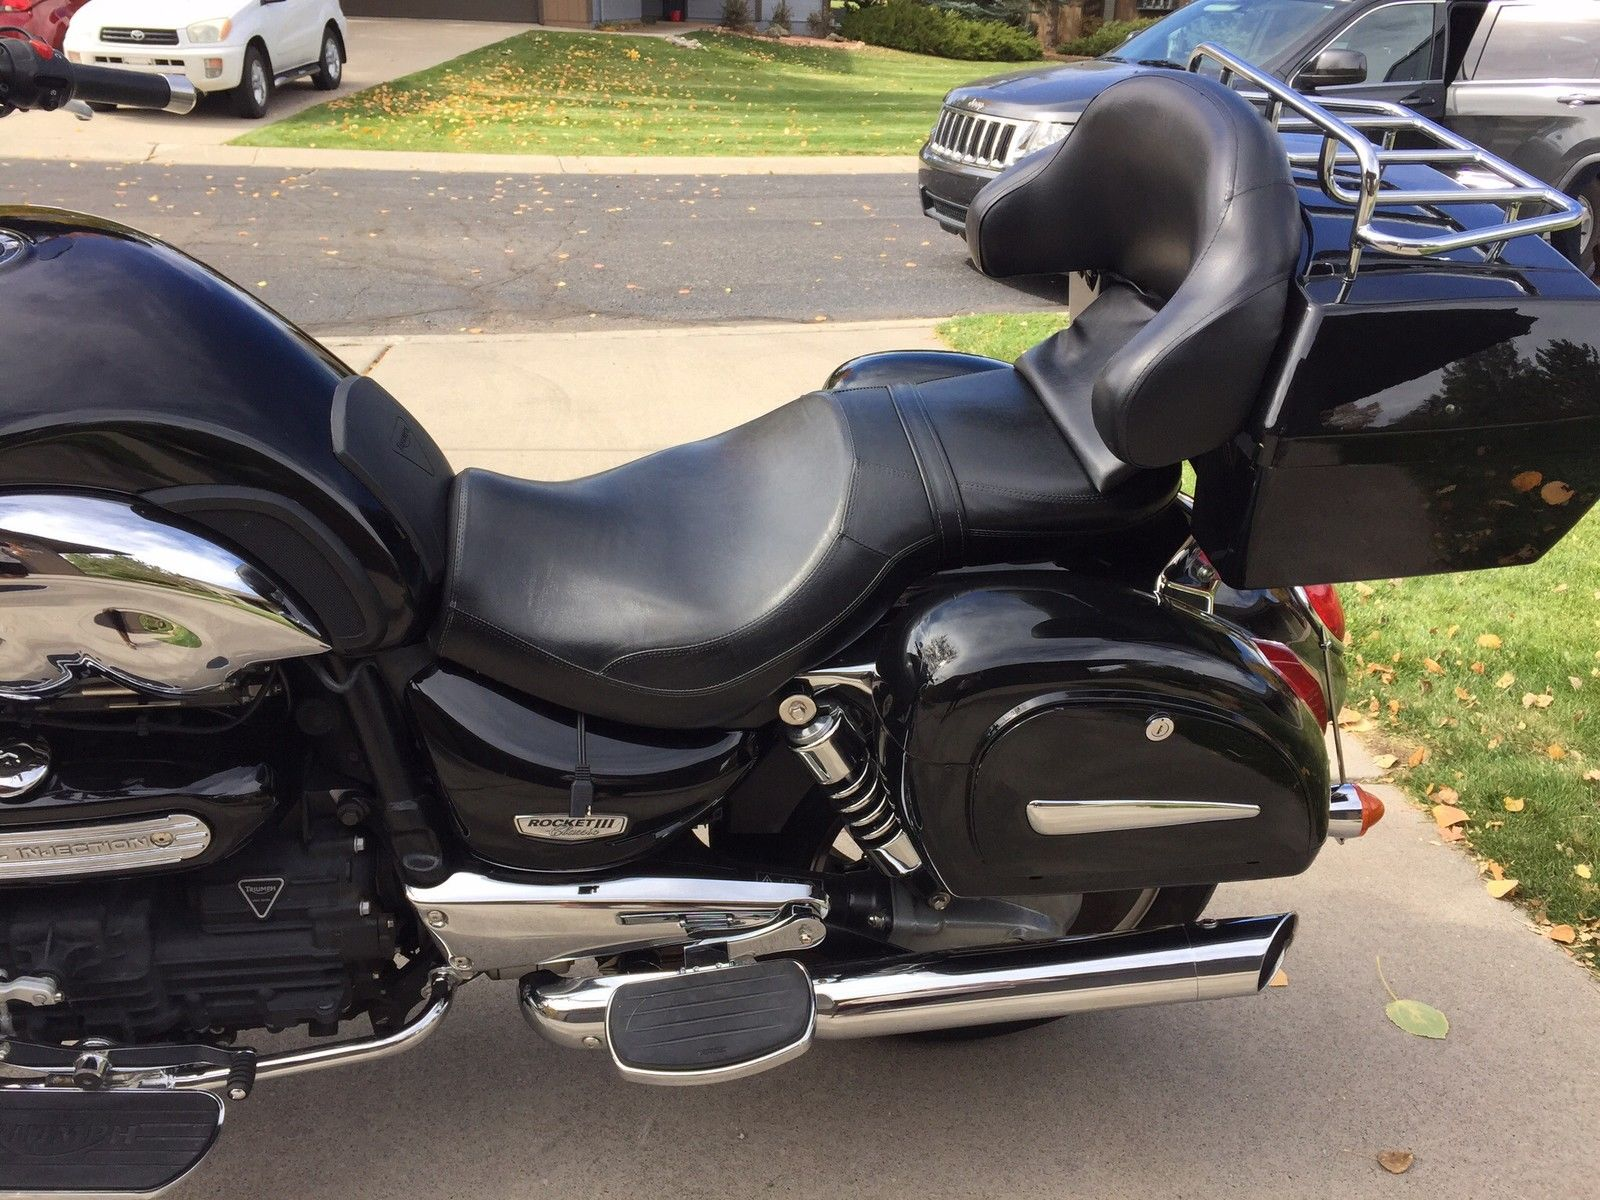 Triumph Rocket 3 Backrest Wiring Diagrams in addition Power Cable Schematics likewise Triumph Rocket 3 Backrest Wiring Diagrams further Eastern Beaver Wiring Harness Thruxton as well Headlight Wiring Harness For 08 Volvo S80. on triumph rocket iii wiring diagram